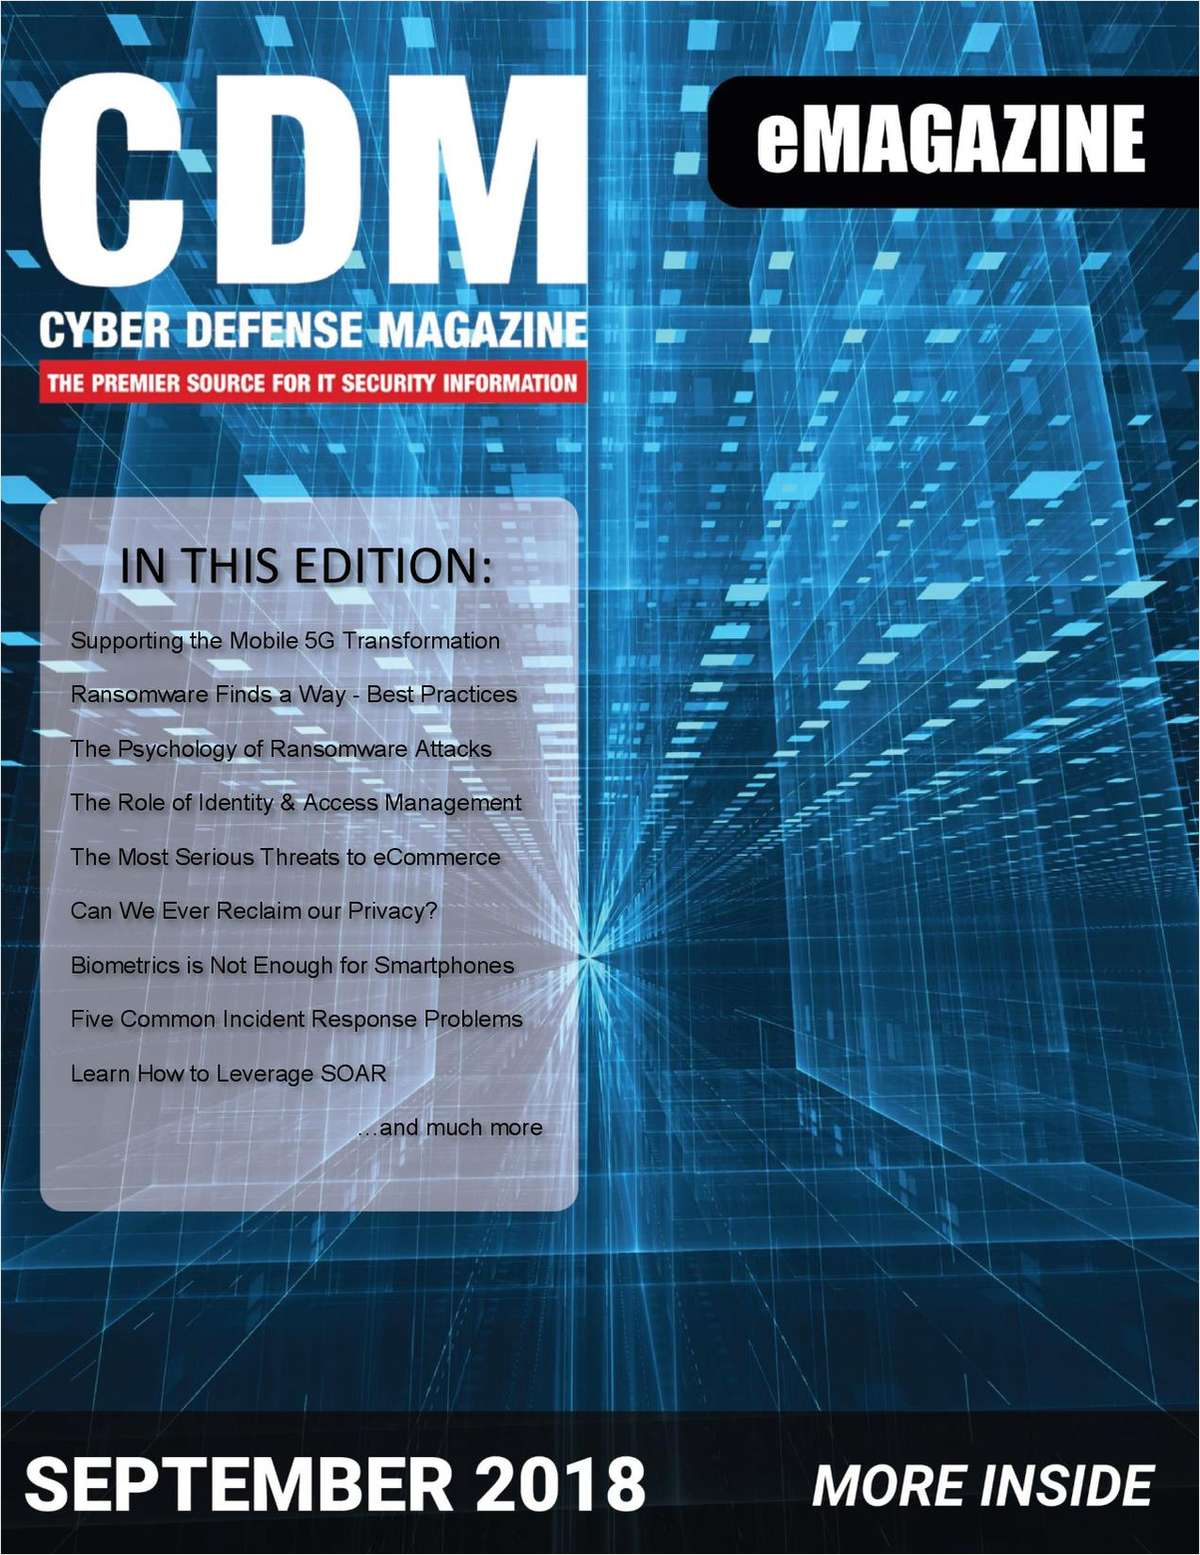 Cyber Defense eMagazine - Supporting the Mobile 5G Transformation - September 2018 Edition